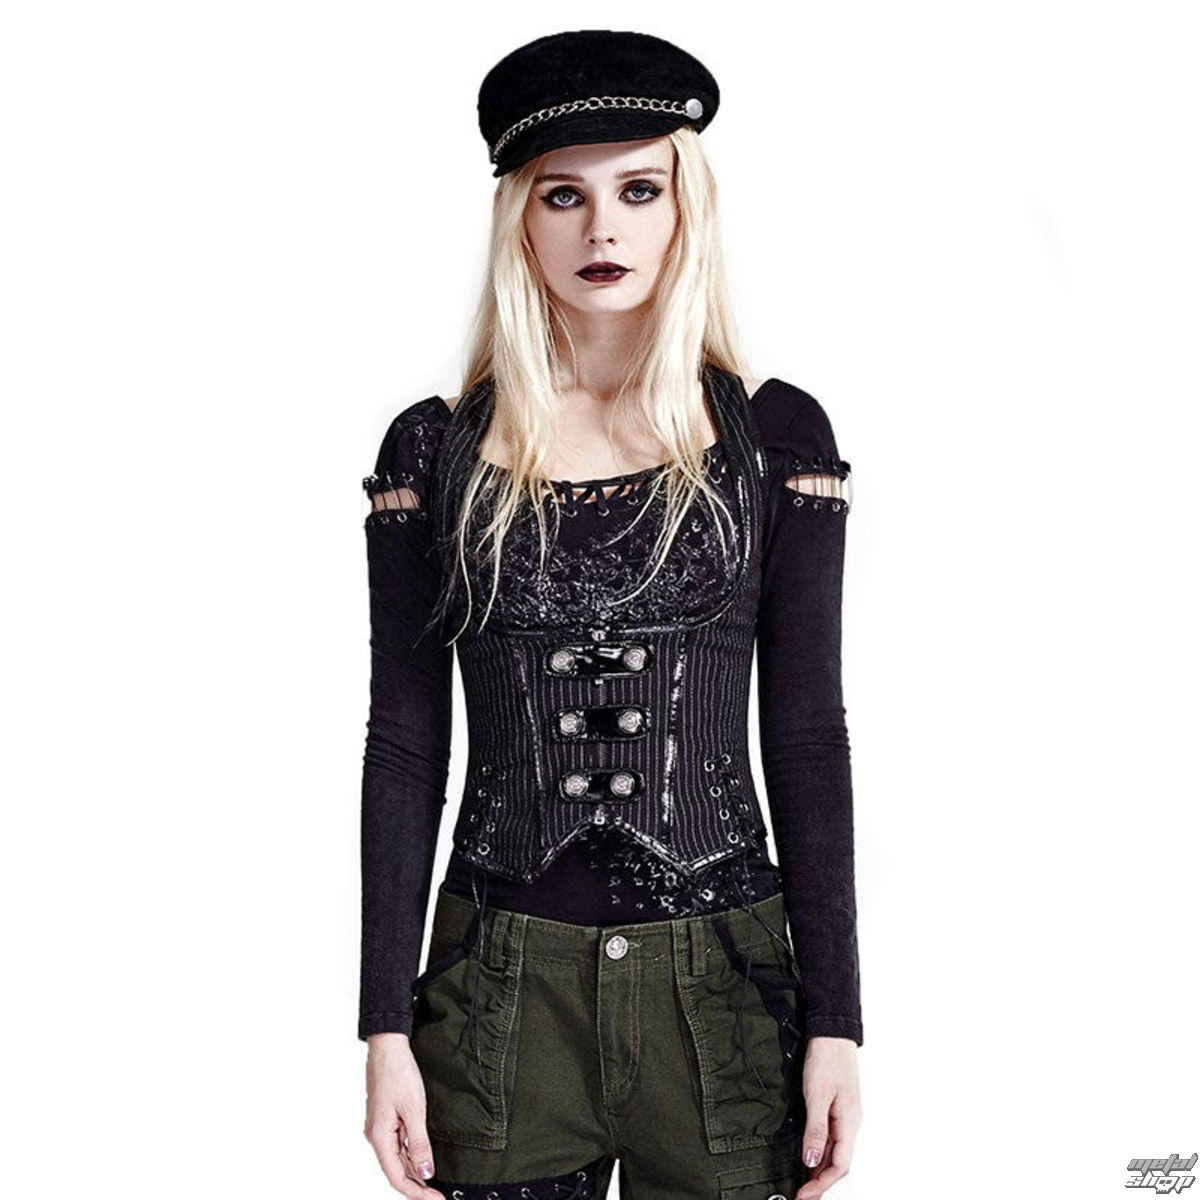 Steampunk Threads - Fashions From The Time That Never Was Punk fashion for ladies